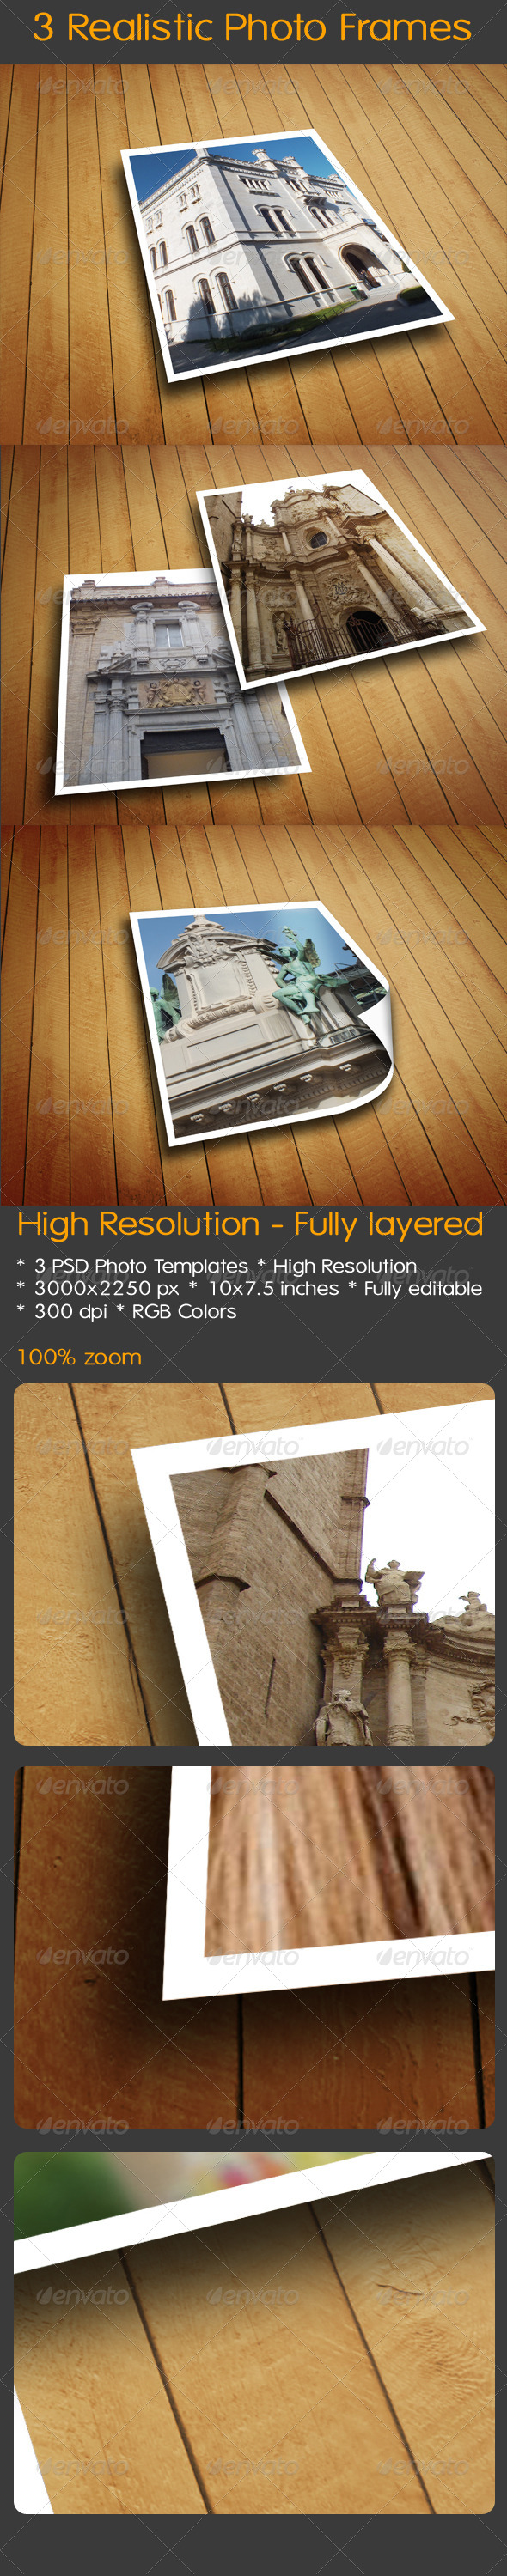 3 Realistic Photo Frames - Miscellaneous Photo Templates